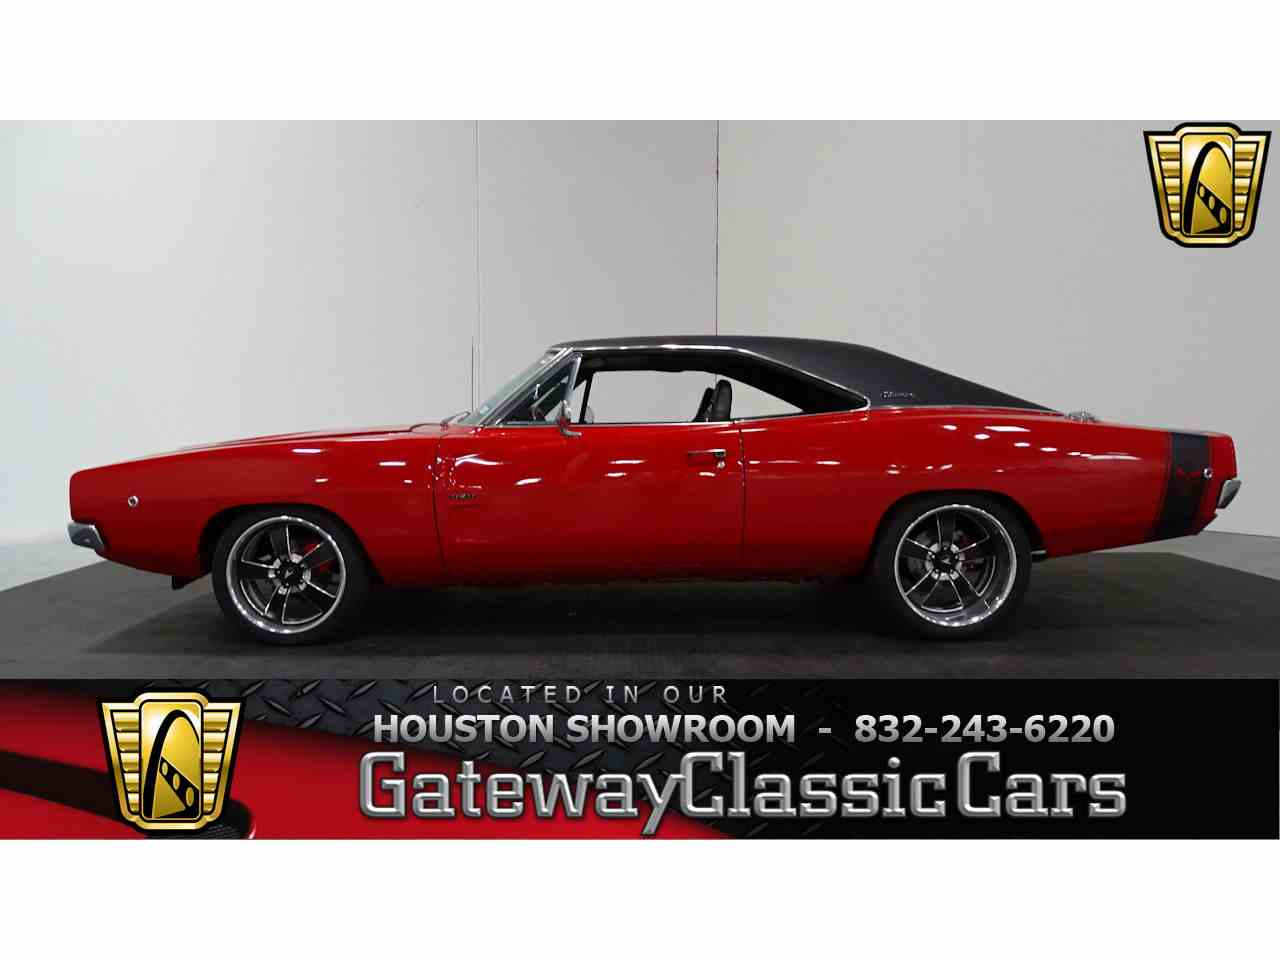 Large Picture of Classic 1968 Dodge Charger located in Houston Texas - $76,000.00 - LUKM